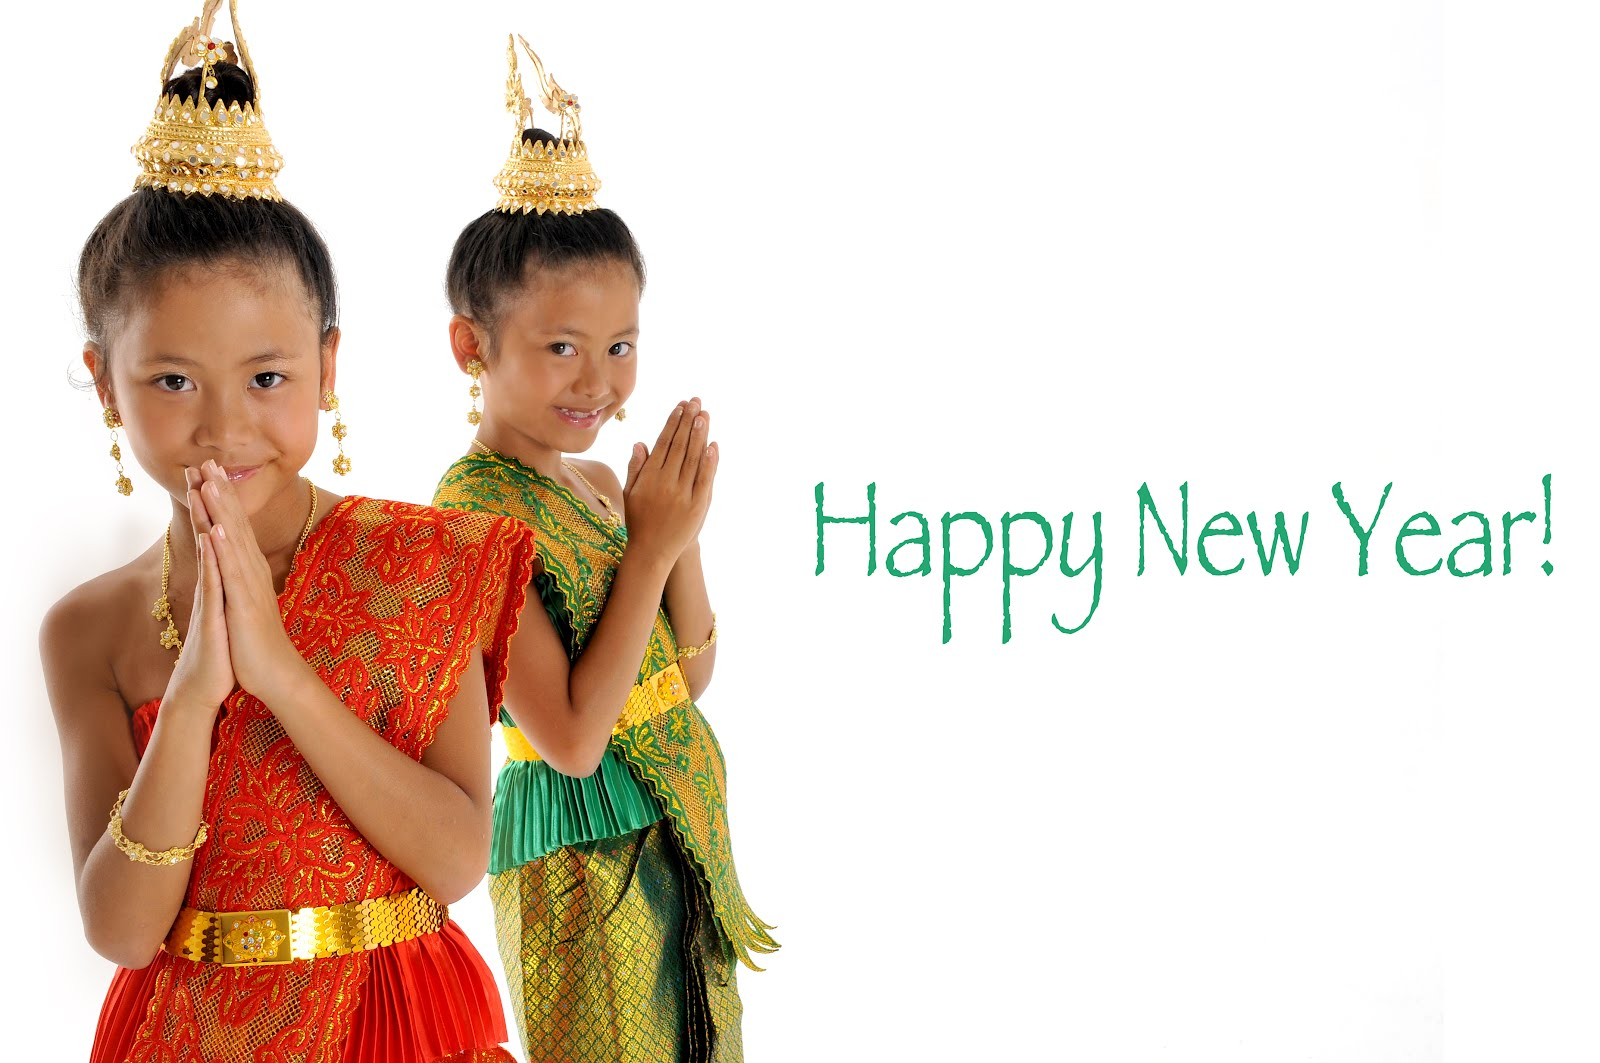 the songkran festival or literally astrological passage is celebrated in thailand as the traditional new years day from 13 to 15 april